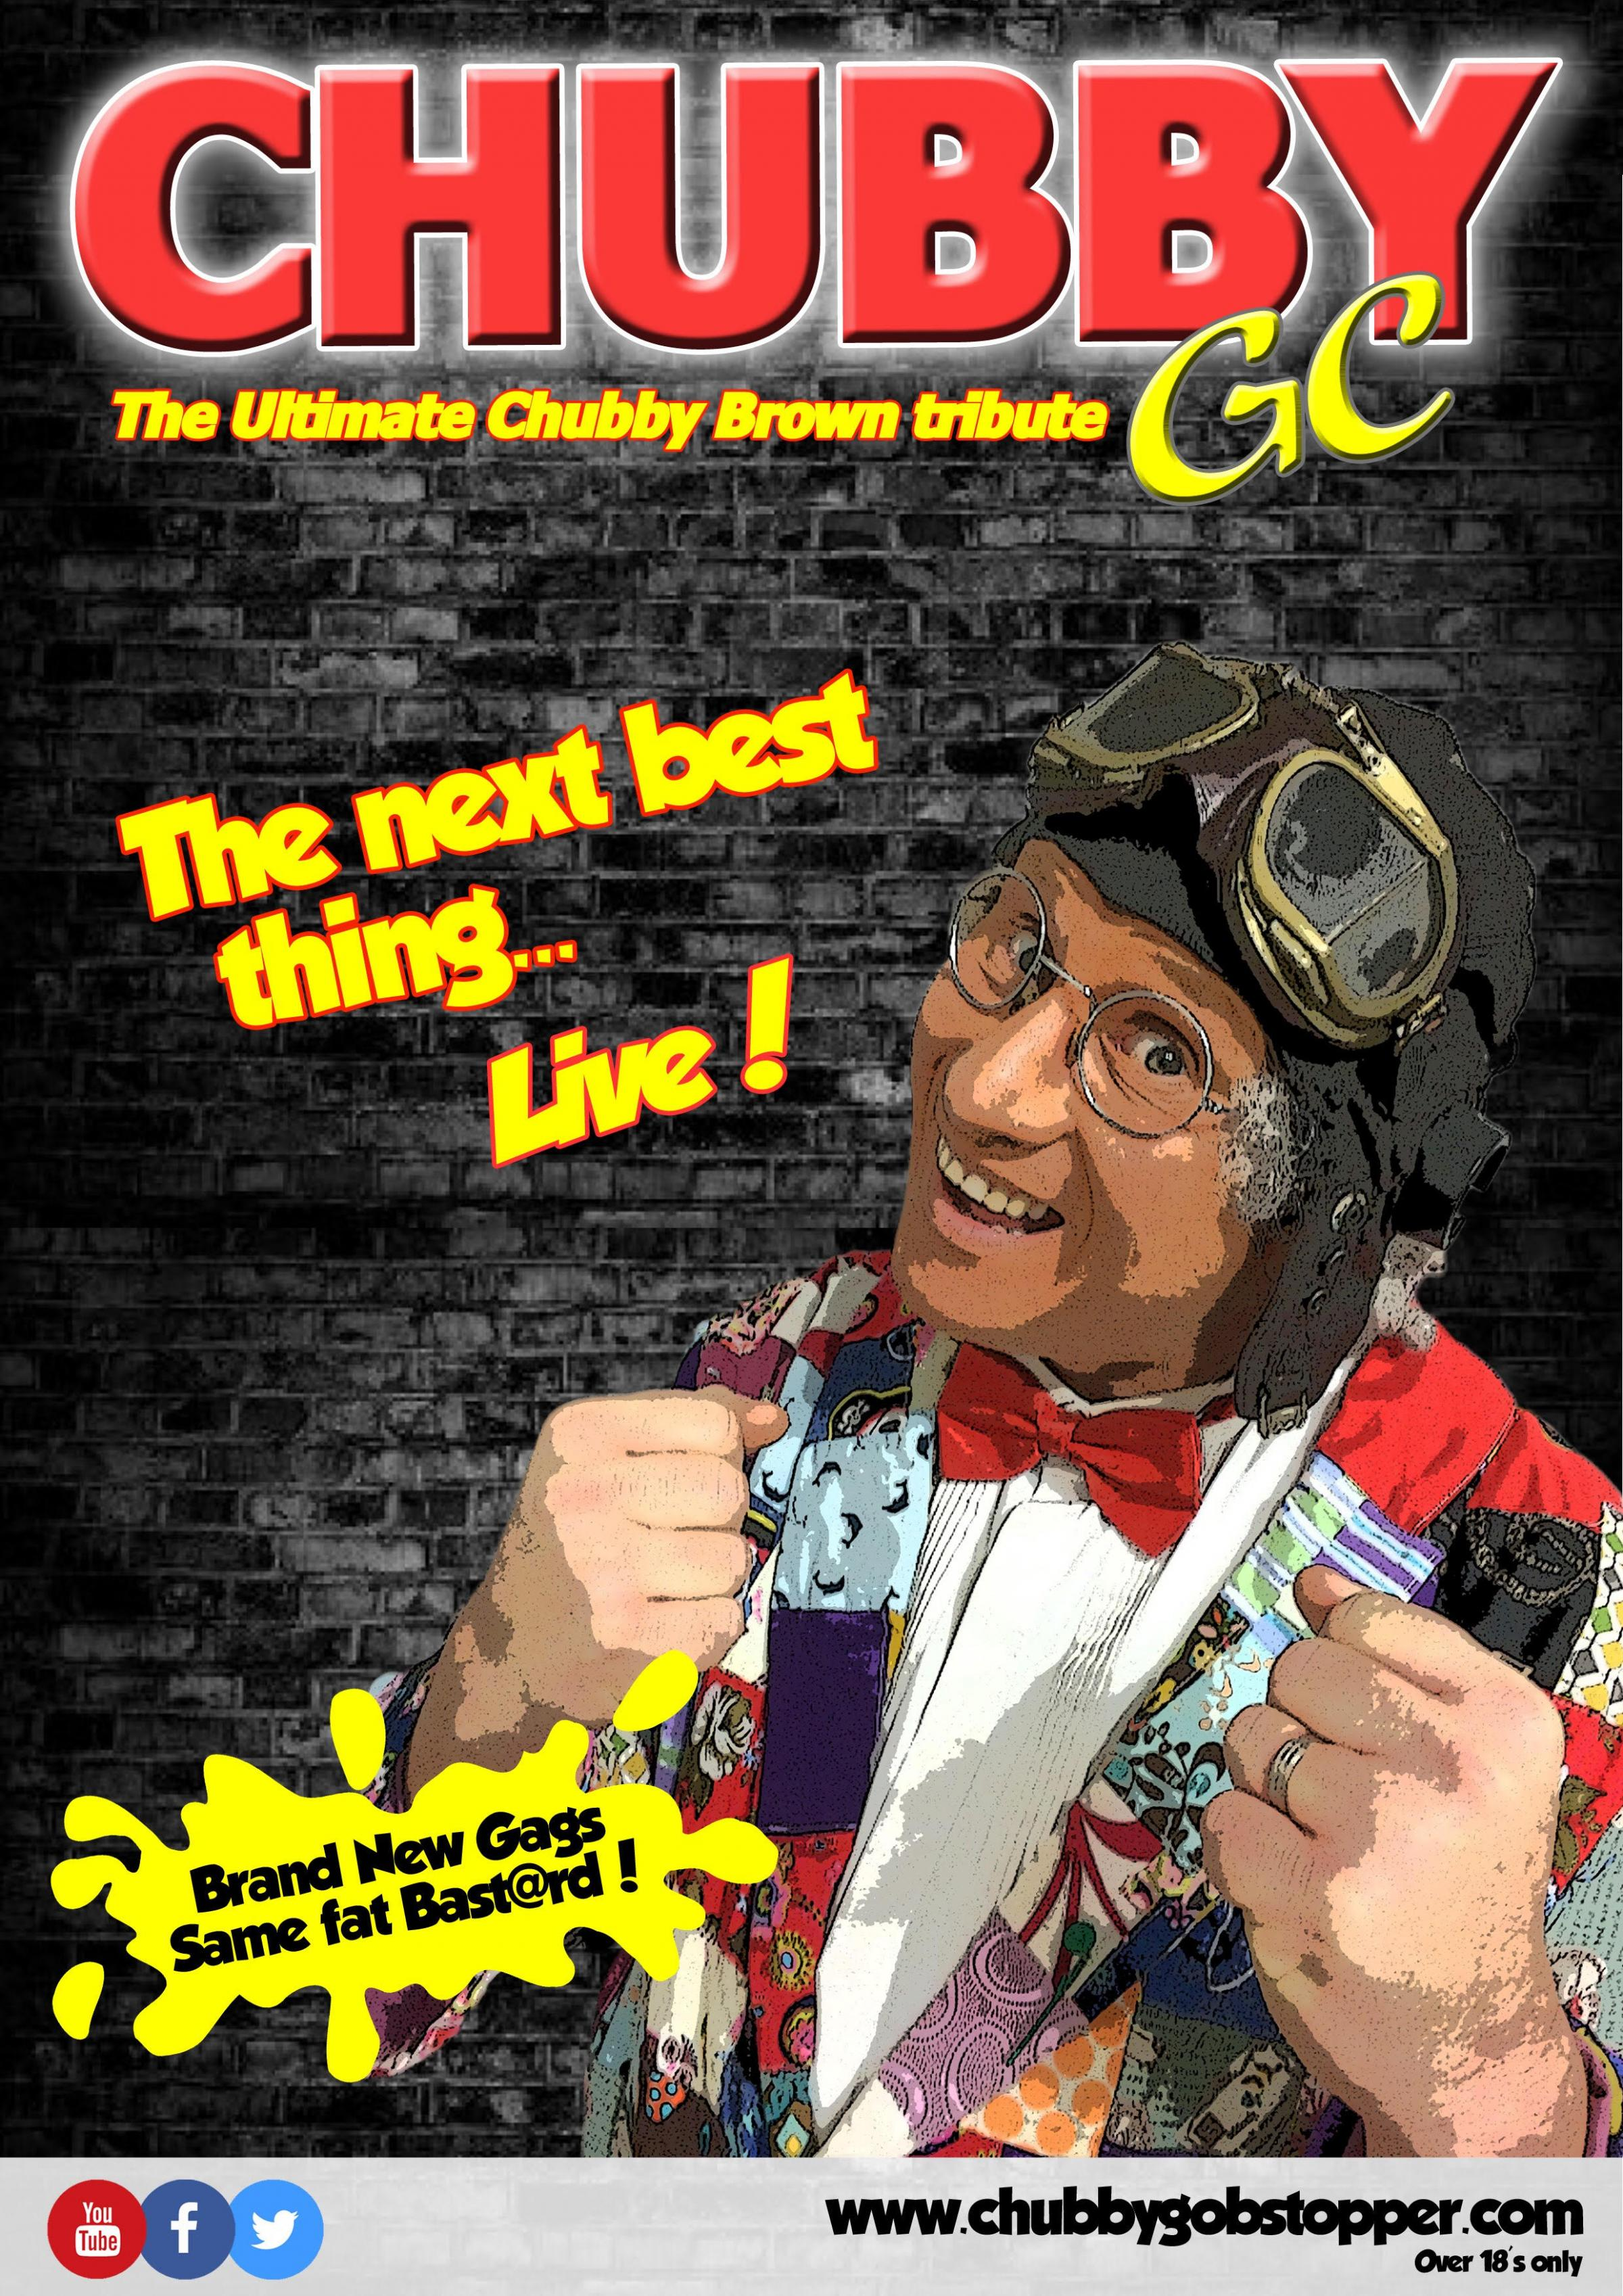 Roy Chubby Brown Tribute Night